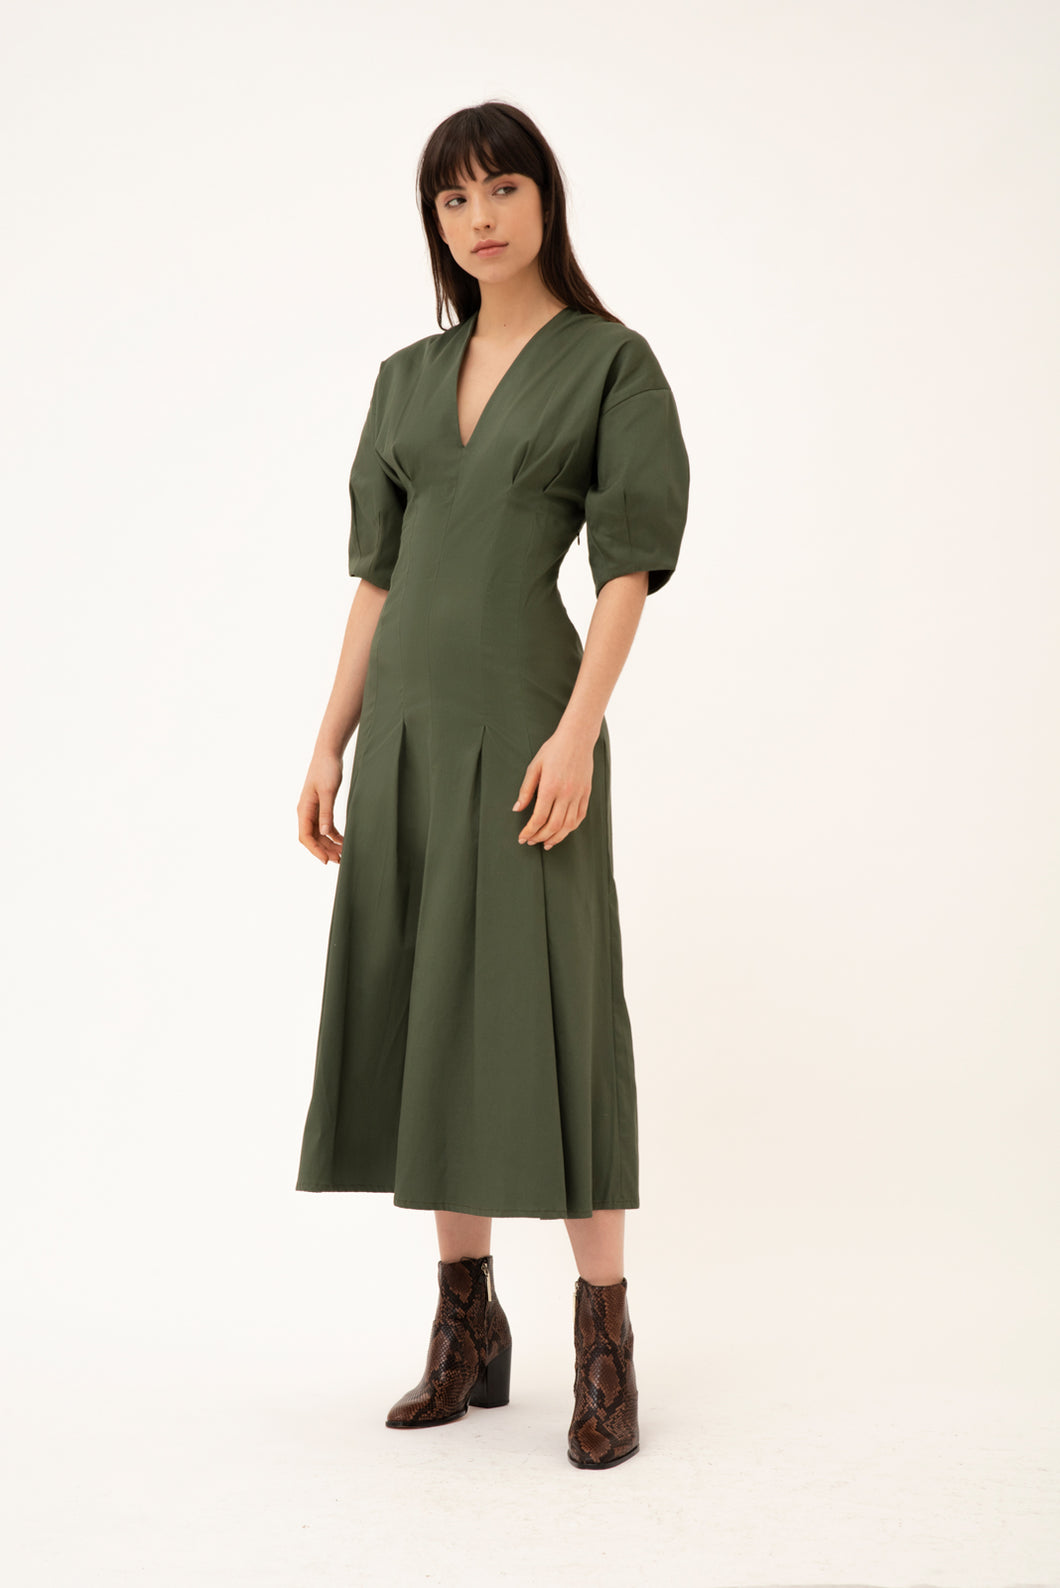 Neptunia cotton dress - Olive green